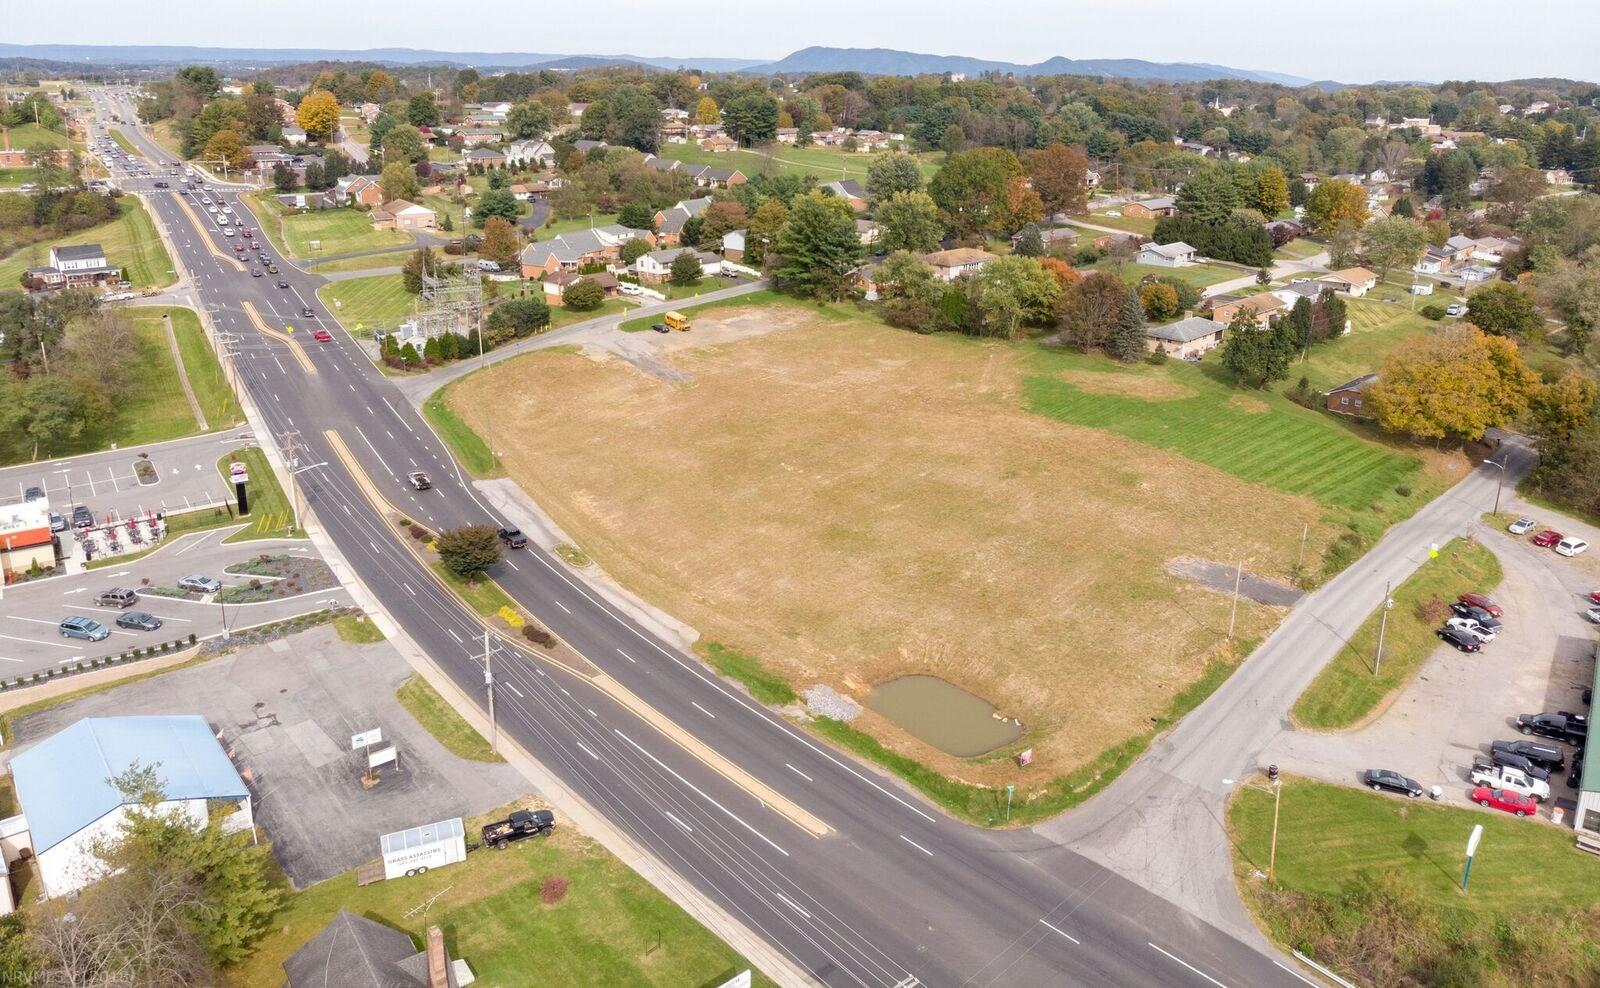 Remarkable Town site that is zoned B3. This zoning allows for multiple uses. Road frontage on F. Franklin St, Church St and Lucas St. The site is pad ready to build on with high visibility. The location is convenient to the 460 By Pass as well as Blacksburg and Radford. This lot is a find within the Town limits.